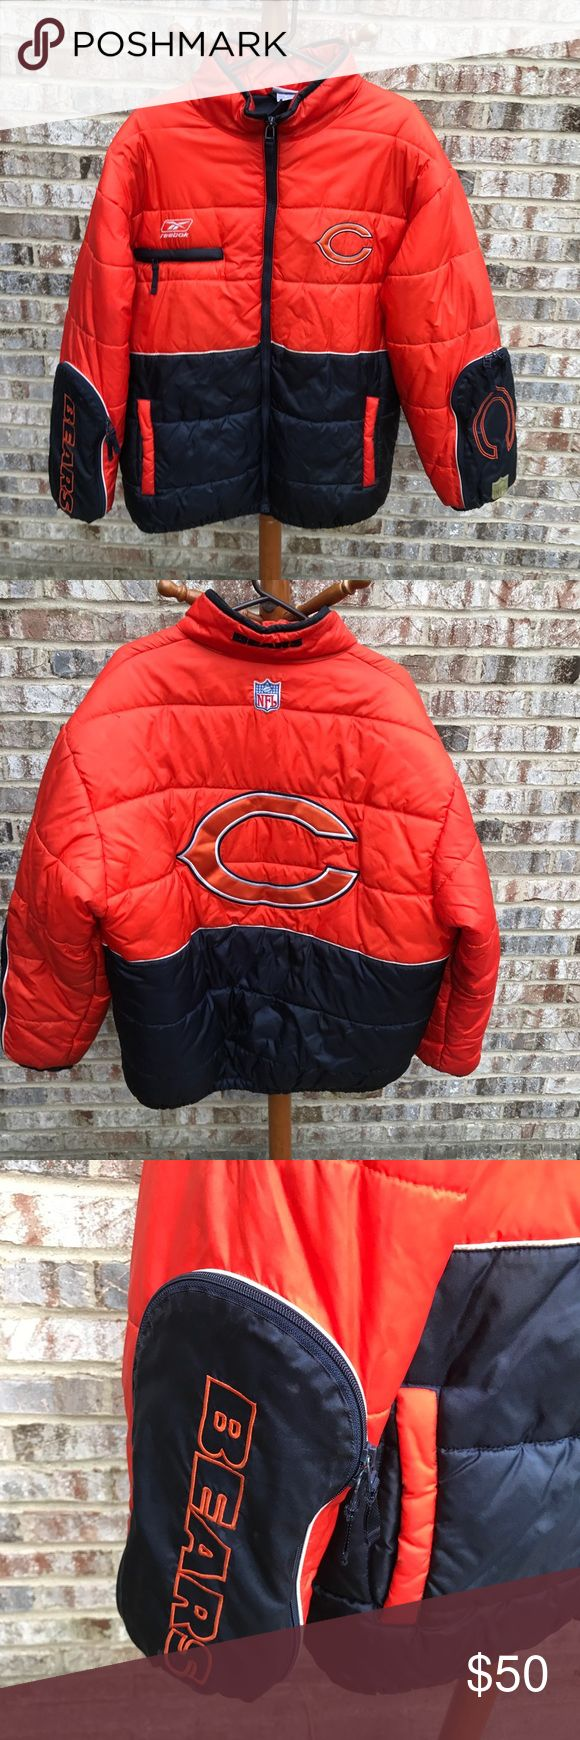 Chicago bears winter coat mens football Men's winter coat. Beautiful Chicago bears winter coat! Great to wear to games! Fully lined on inside in a blue color. Pockets on arm cuffs and sides. Chicago bears logo on front and back. Lightly used. See pictures. 🏉 Reebok Jackets & Coats Puffers